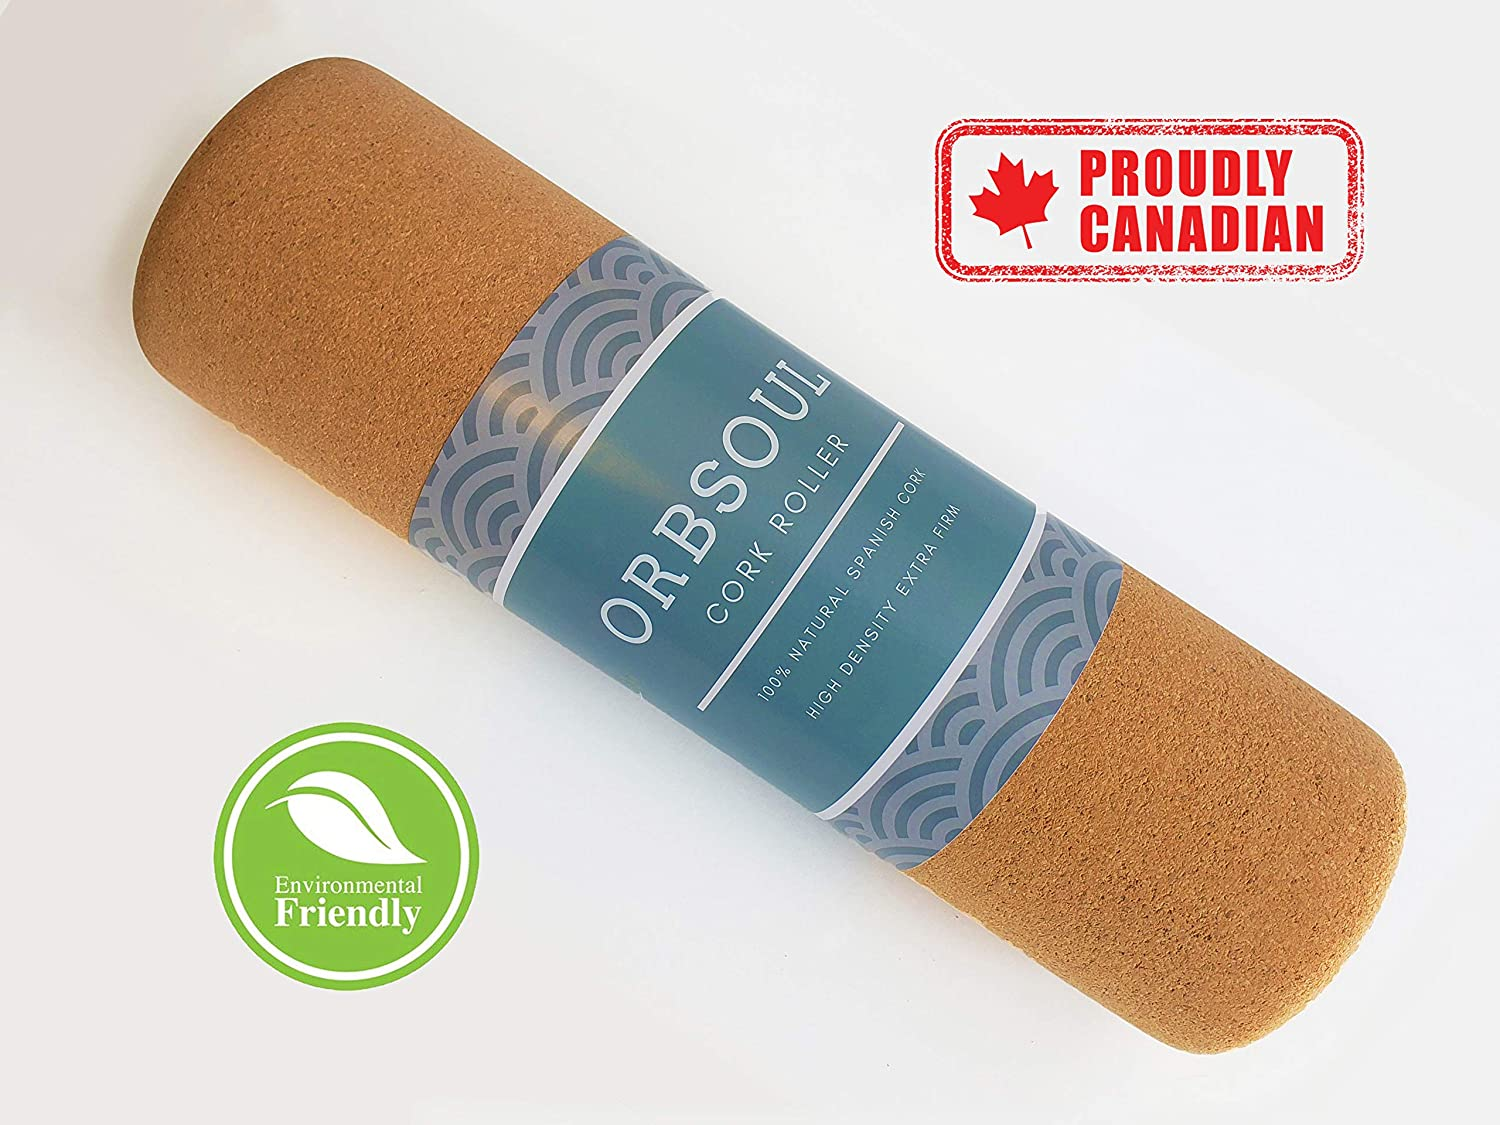 100 All Natural Spanish Cork Orbsoul Cork Massage Roller For Muscle Pain And Tension Relief Eco Friendly Sports Outdoors Sports Fitness